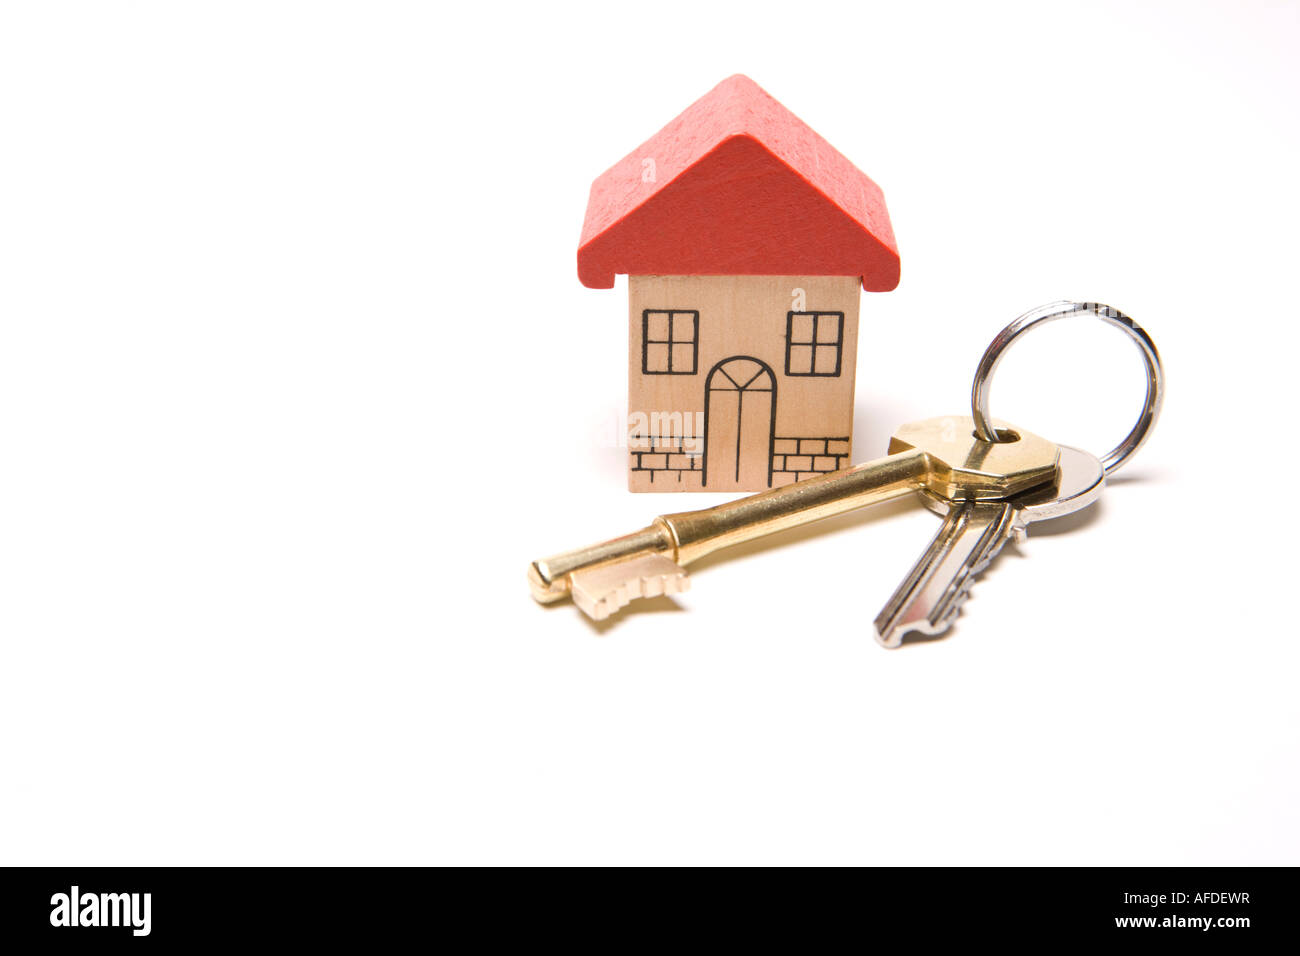 Owner home sweet home first time buyer house keys to new property - Stock Image